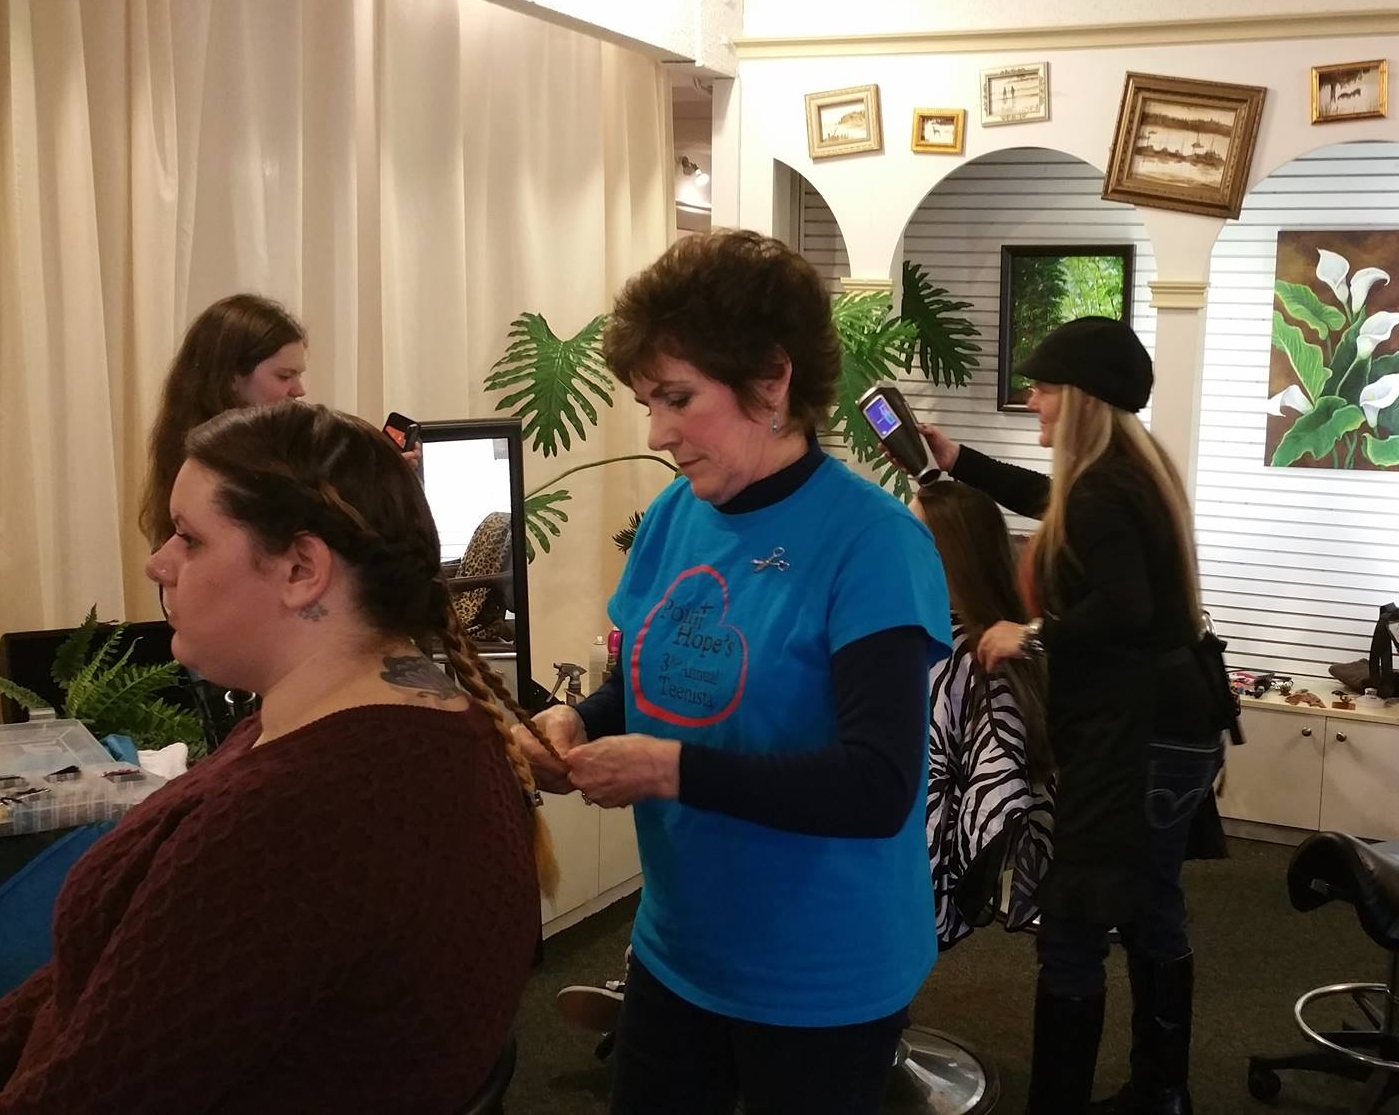 """The """"Hairstyling Station"""" is probably the MOST favorite station in the entire day. Young ladies get cuts, styles and up-dos, plus they may receive a card with future appointments for the year--something they often cannot afford or don't have access to in their """"real world"""" experience."""